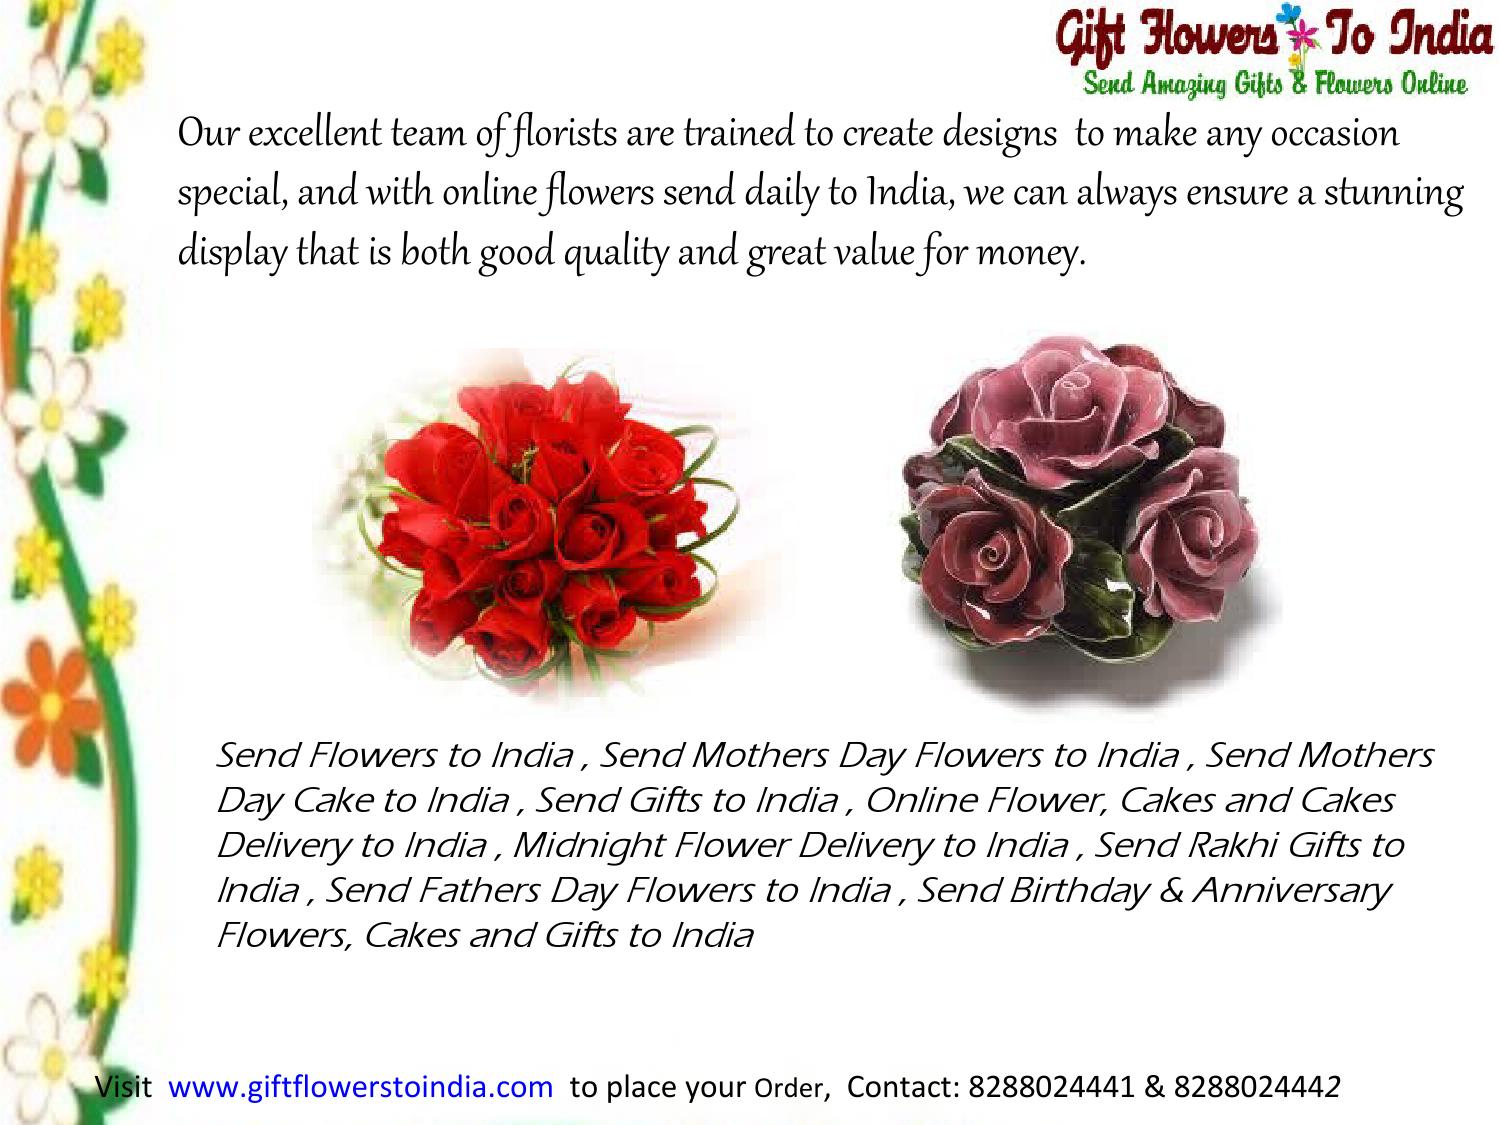 Send flowers and gifts to india by giftflowerstoindia issuu izmirmasajfo